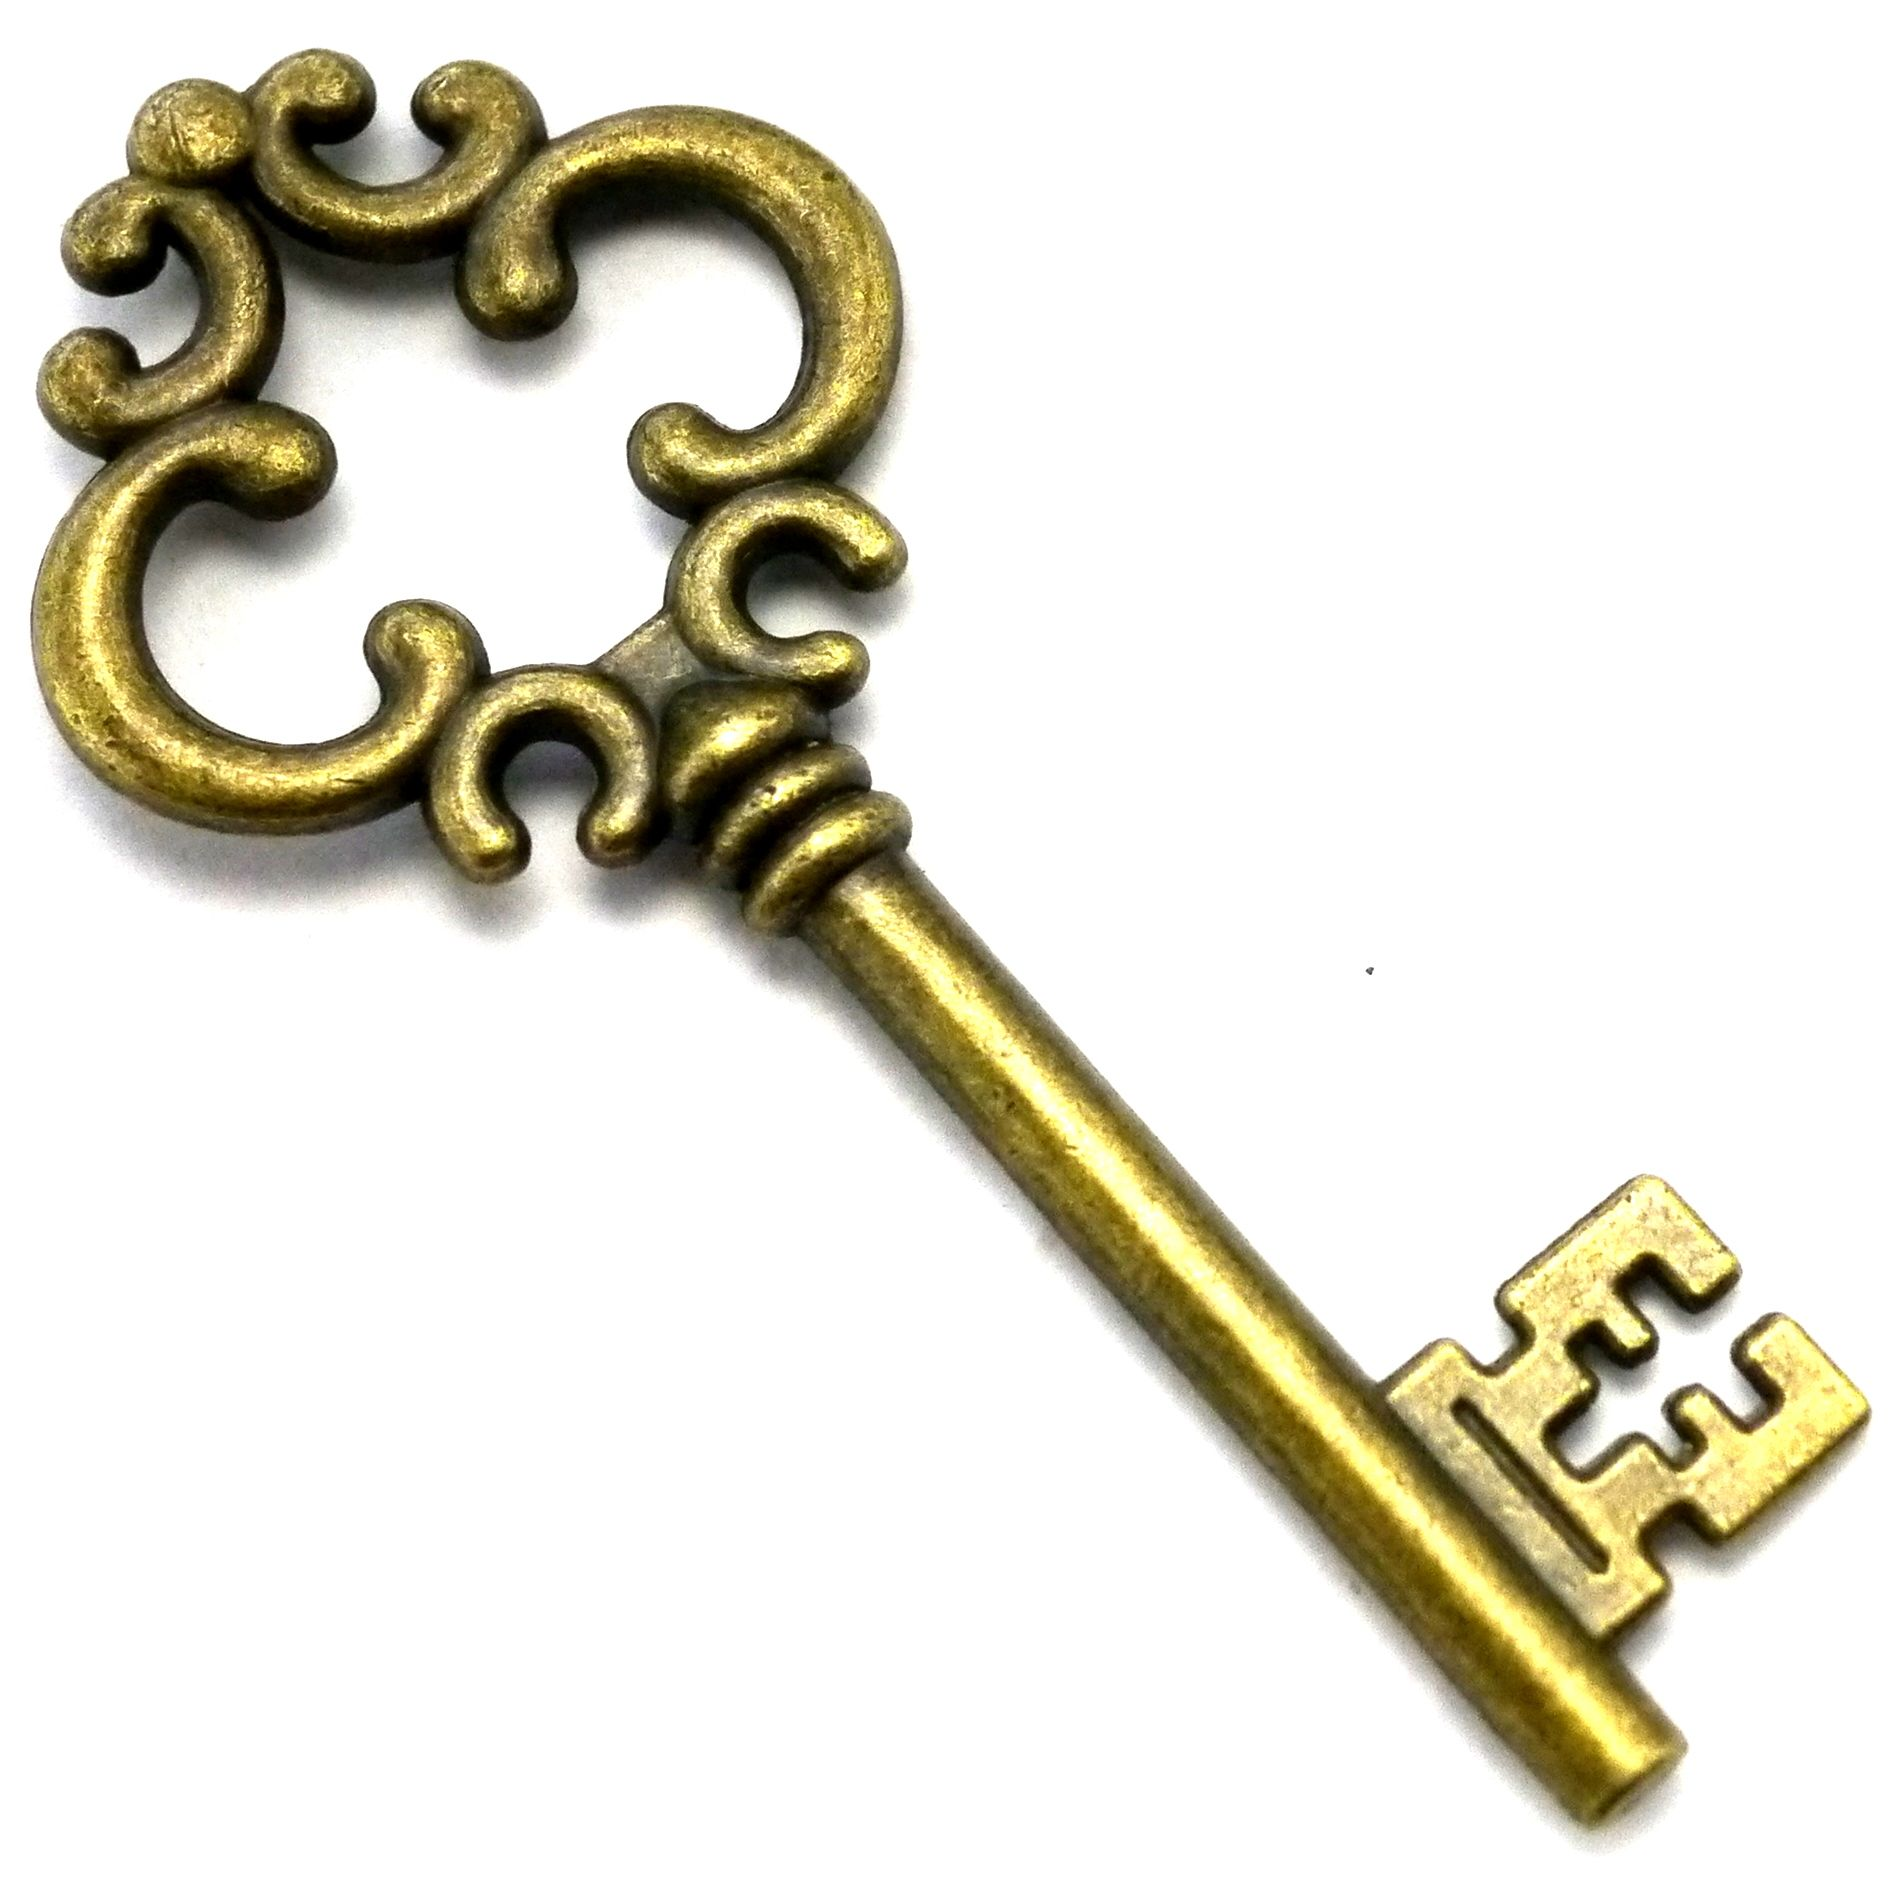 Le Meilleur Vintage Old Key Classic To Lock The Doors Clipart Free Ce Mois Ci